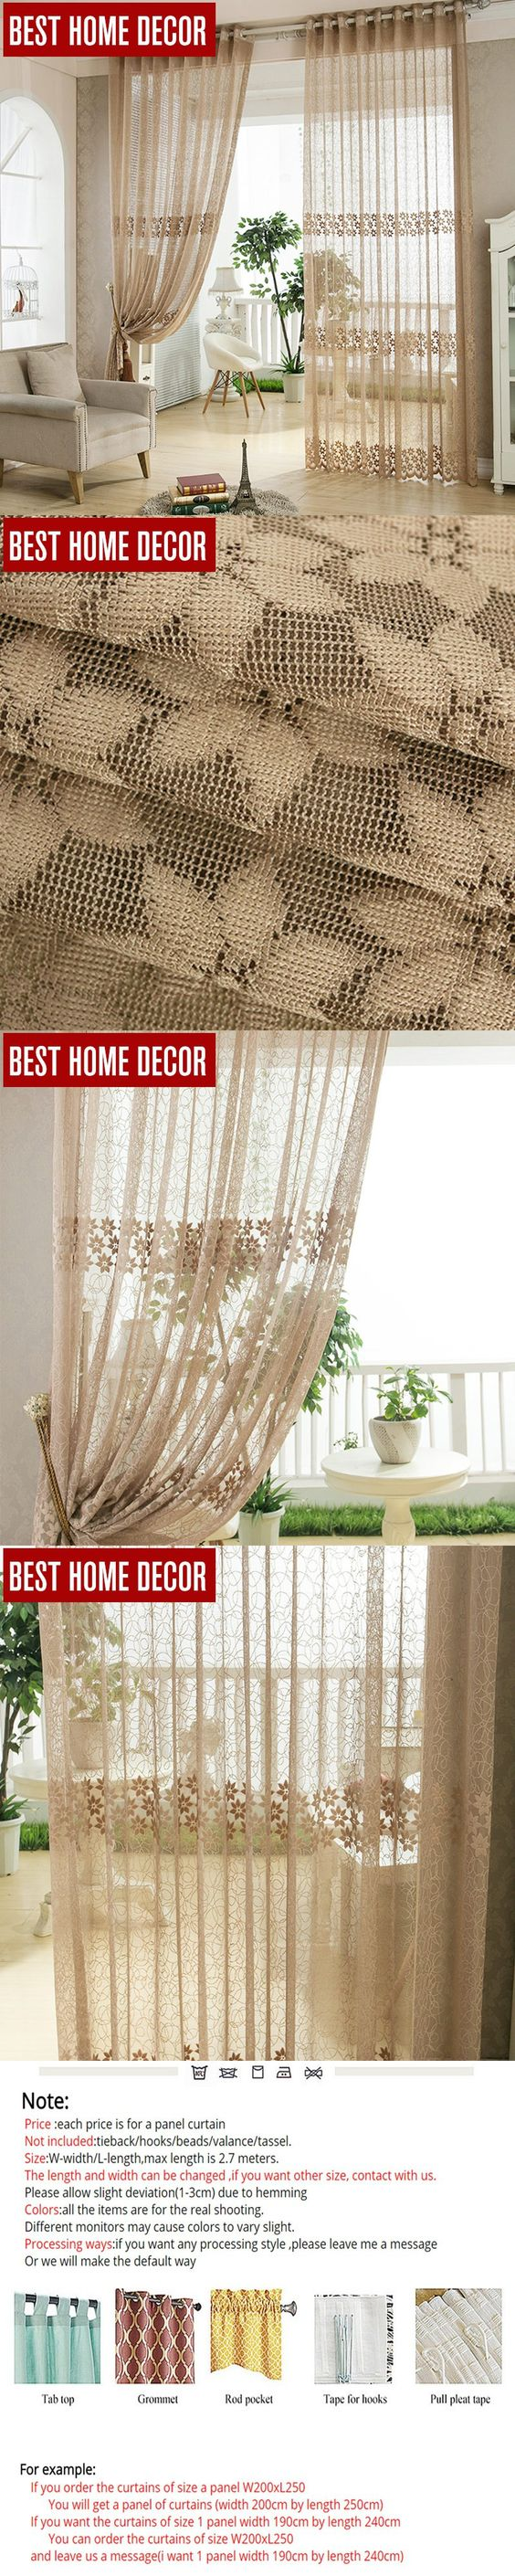 Sheer window curtains kitchen - Best Home Decor Tulle Sheer Window Curtains For Living Room The Bedroom Kitchen Modern Tulle Curtains